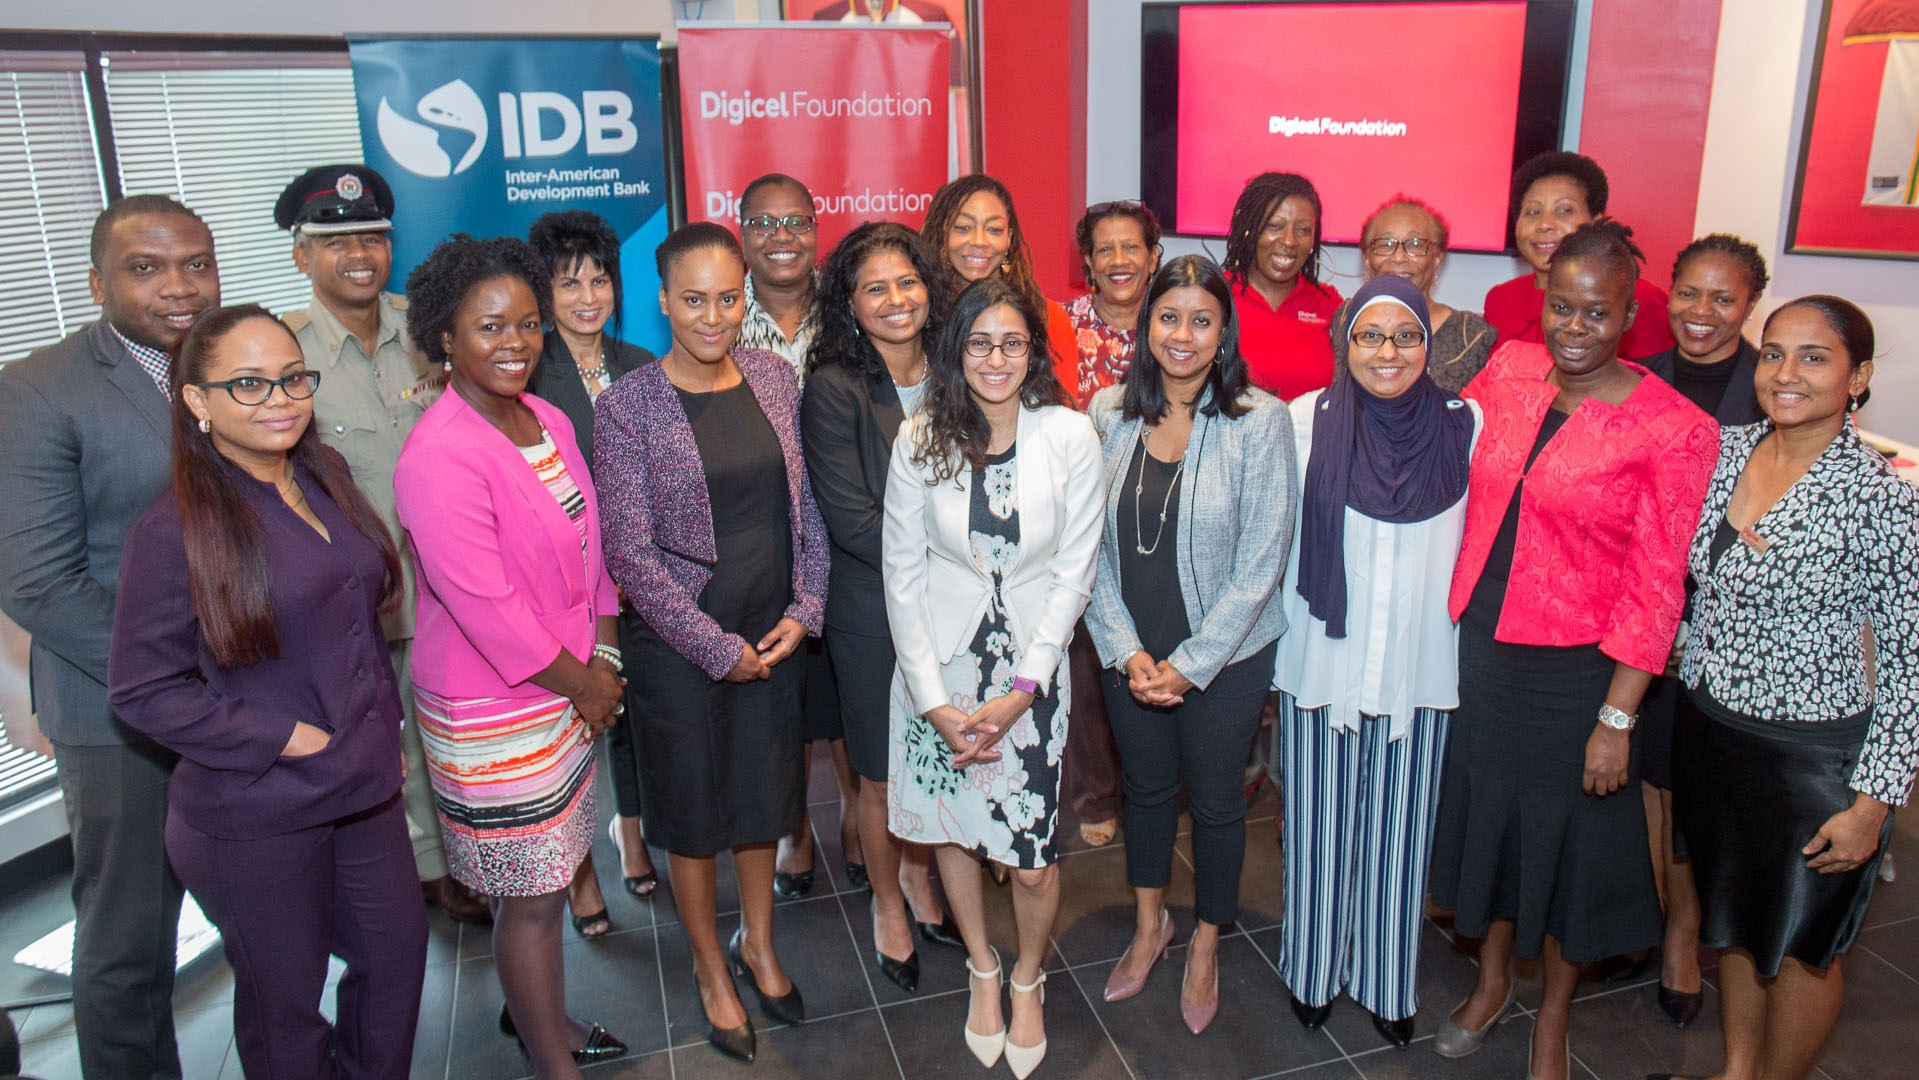 Digicel Foundation Chairman Desha Clifford (front row, 6th from left) with members of the Digicel Foundation and other attendees at the launch of the Preparing You! Year III